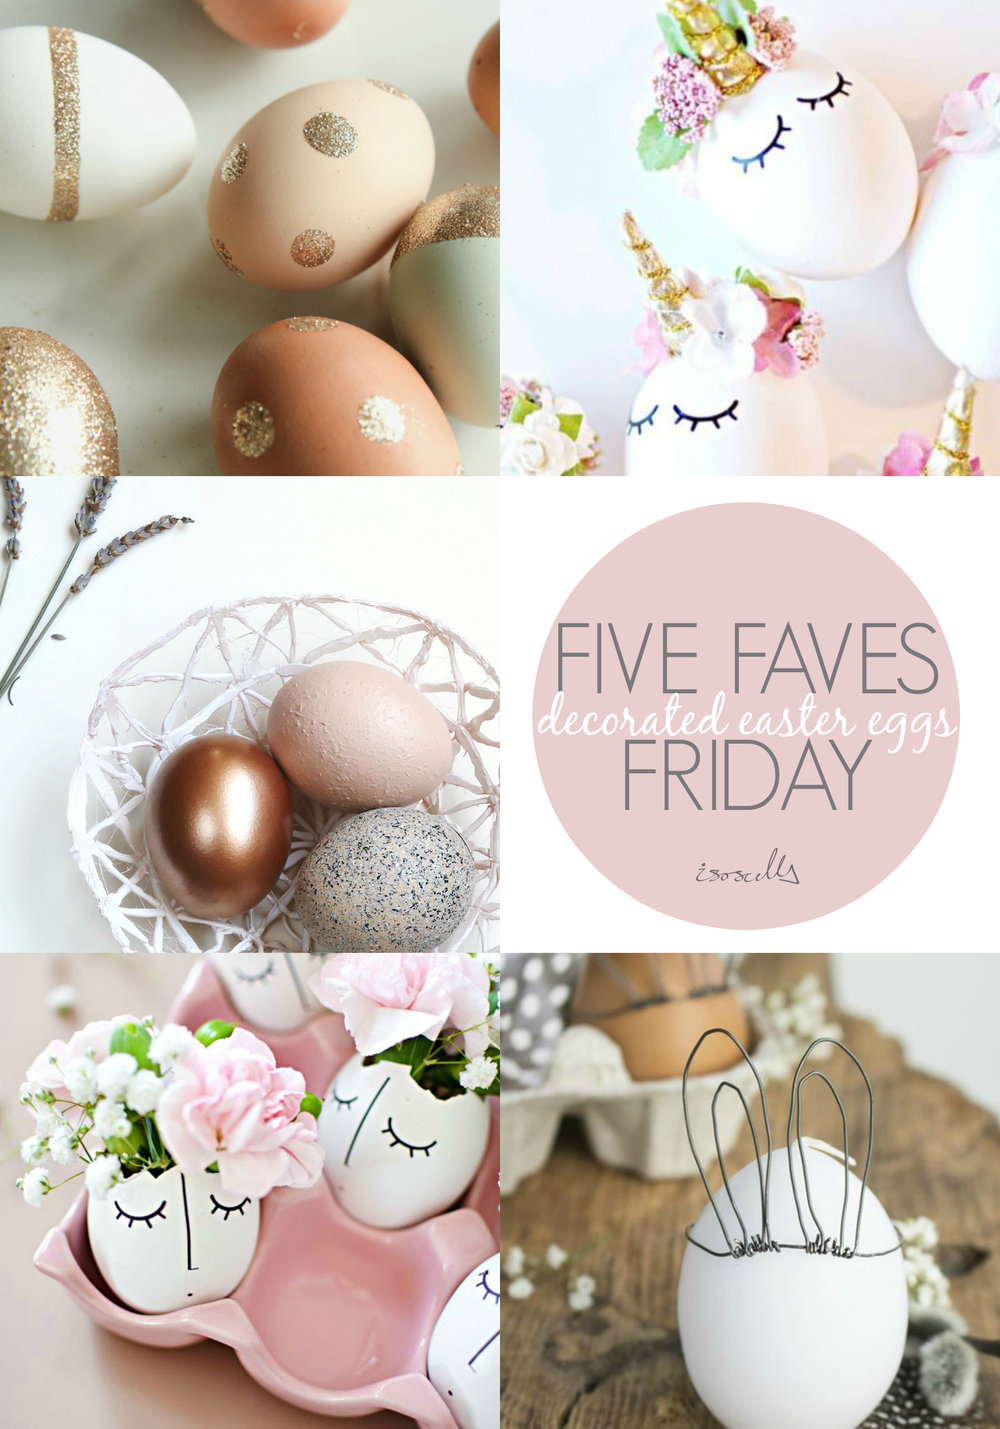 Five Faves Friday: Decorated Easter Eggs by Isoscella